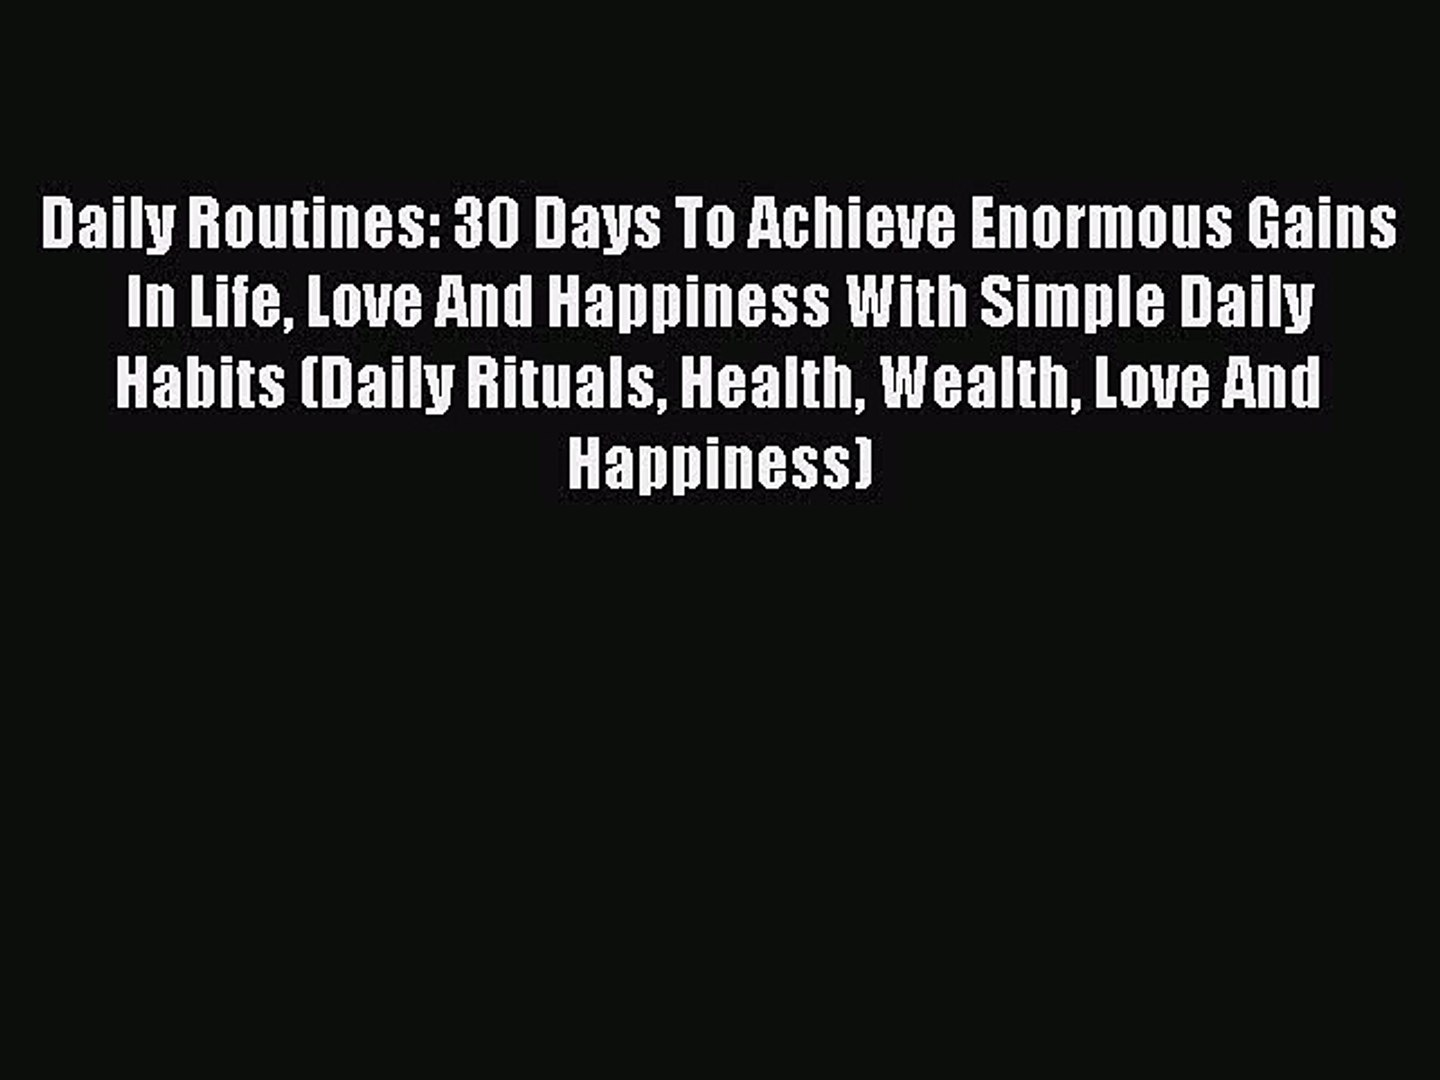 Daily Routines: 30 Days To Achieve Enormous Gains In Life Love And Happiness With Simple Daily